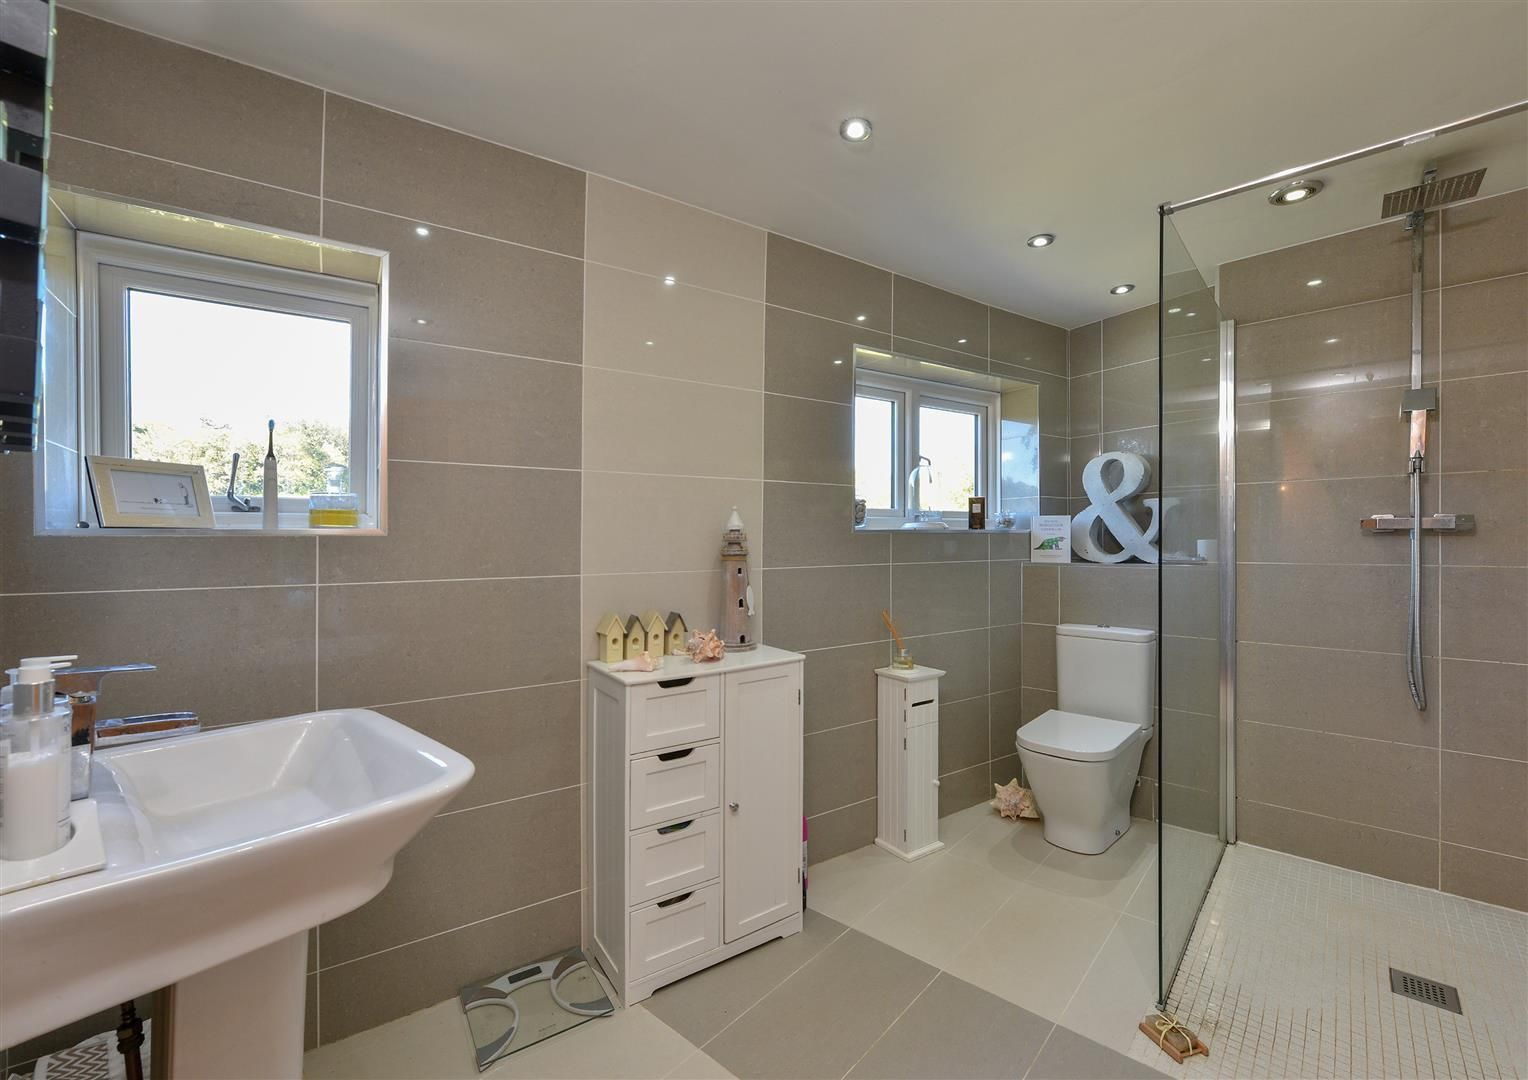 4 bed house for sale in Clent  - Property Image 20